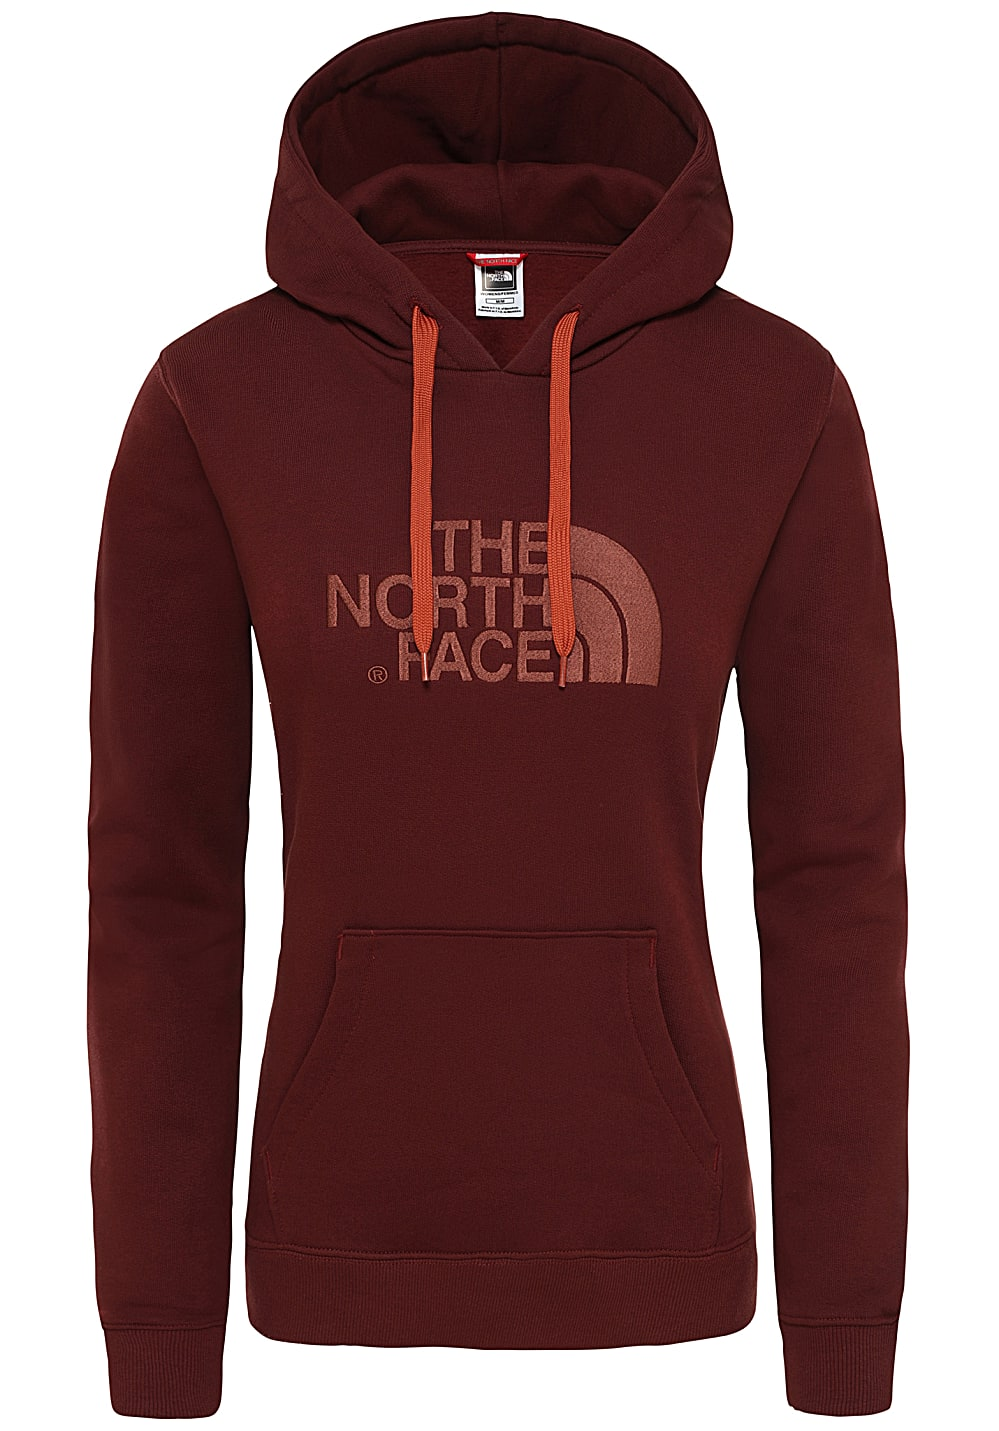 THE NORTH FACE Drew Peak Felpa con cappuccio per Donna Grigio